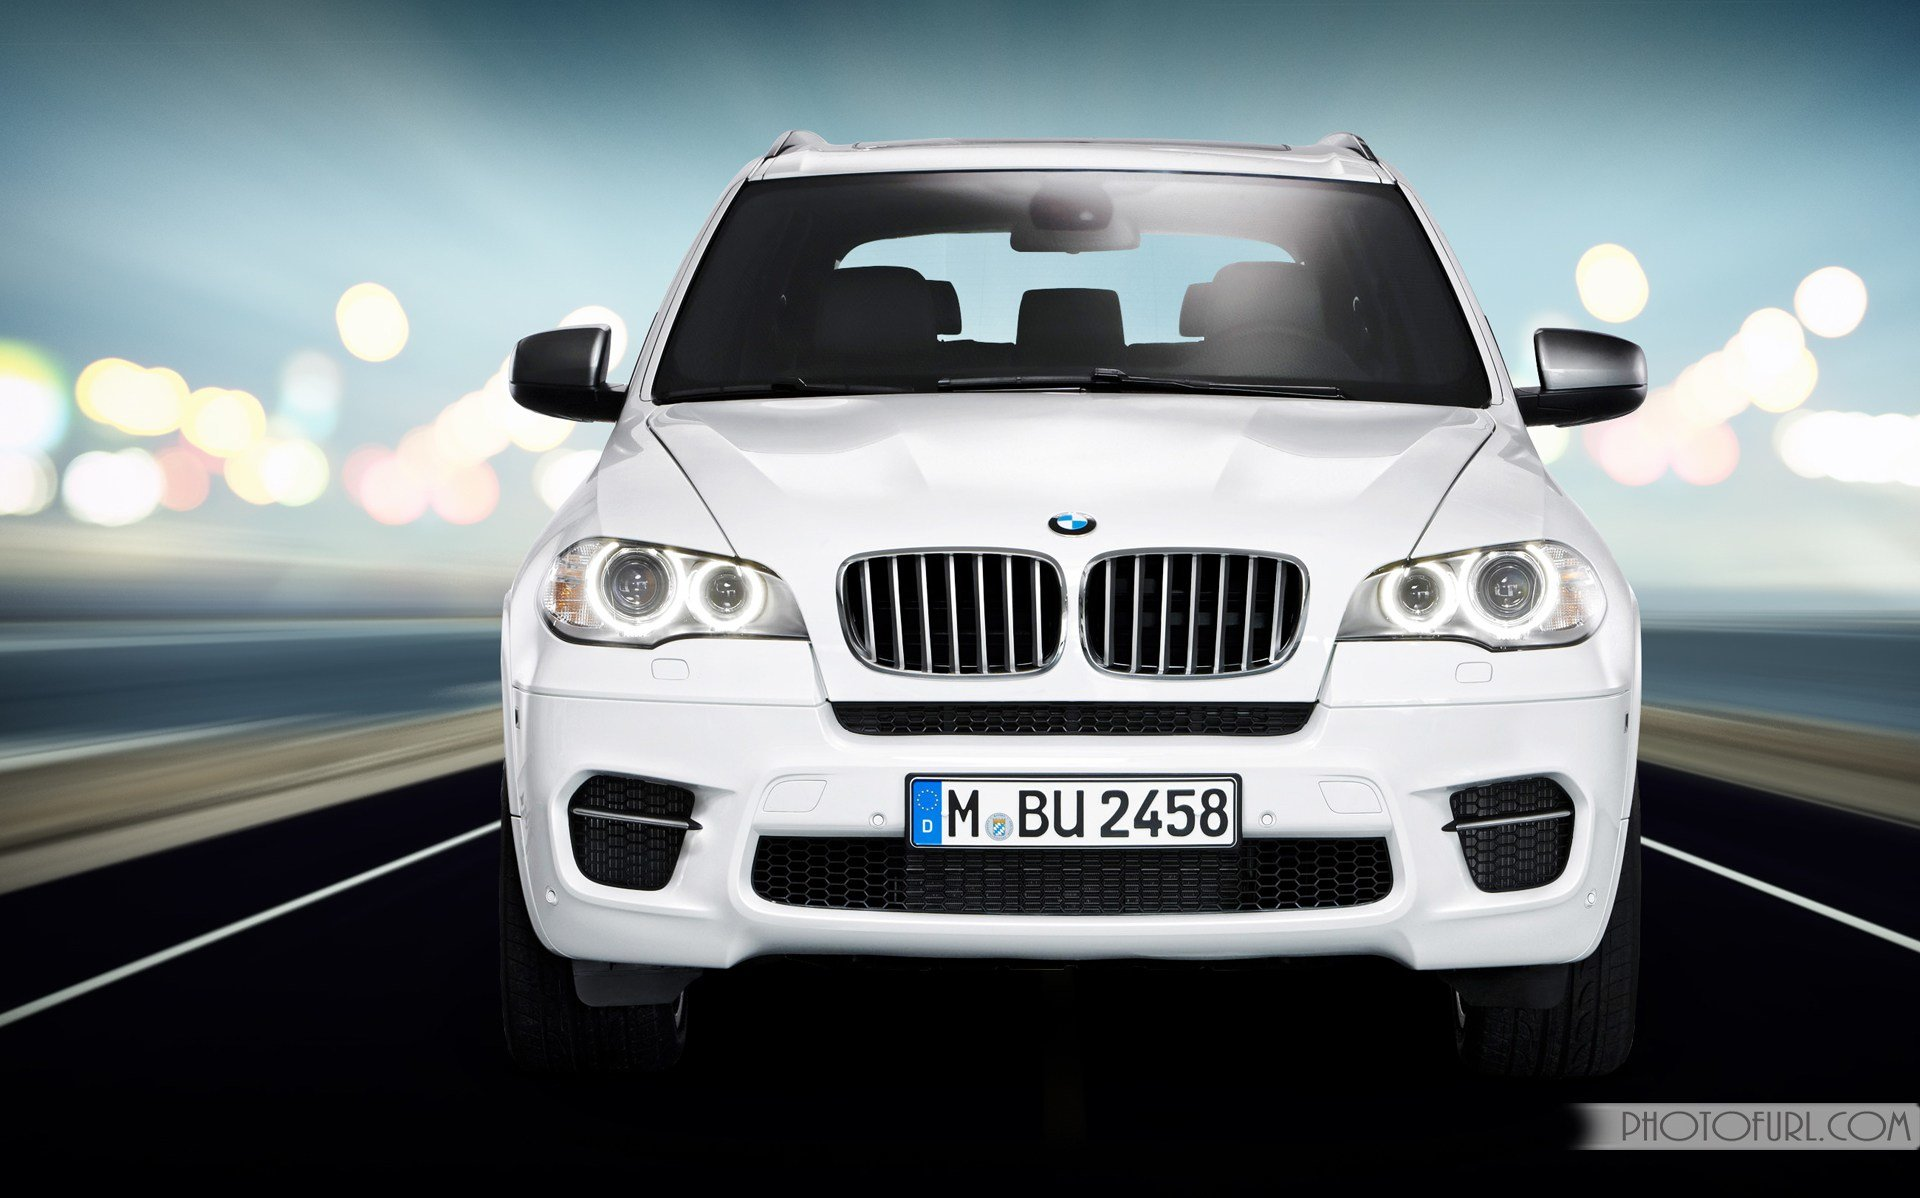 Latest Bmw X5 M3 Series Latest Model Wallpapers Free Download